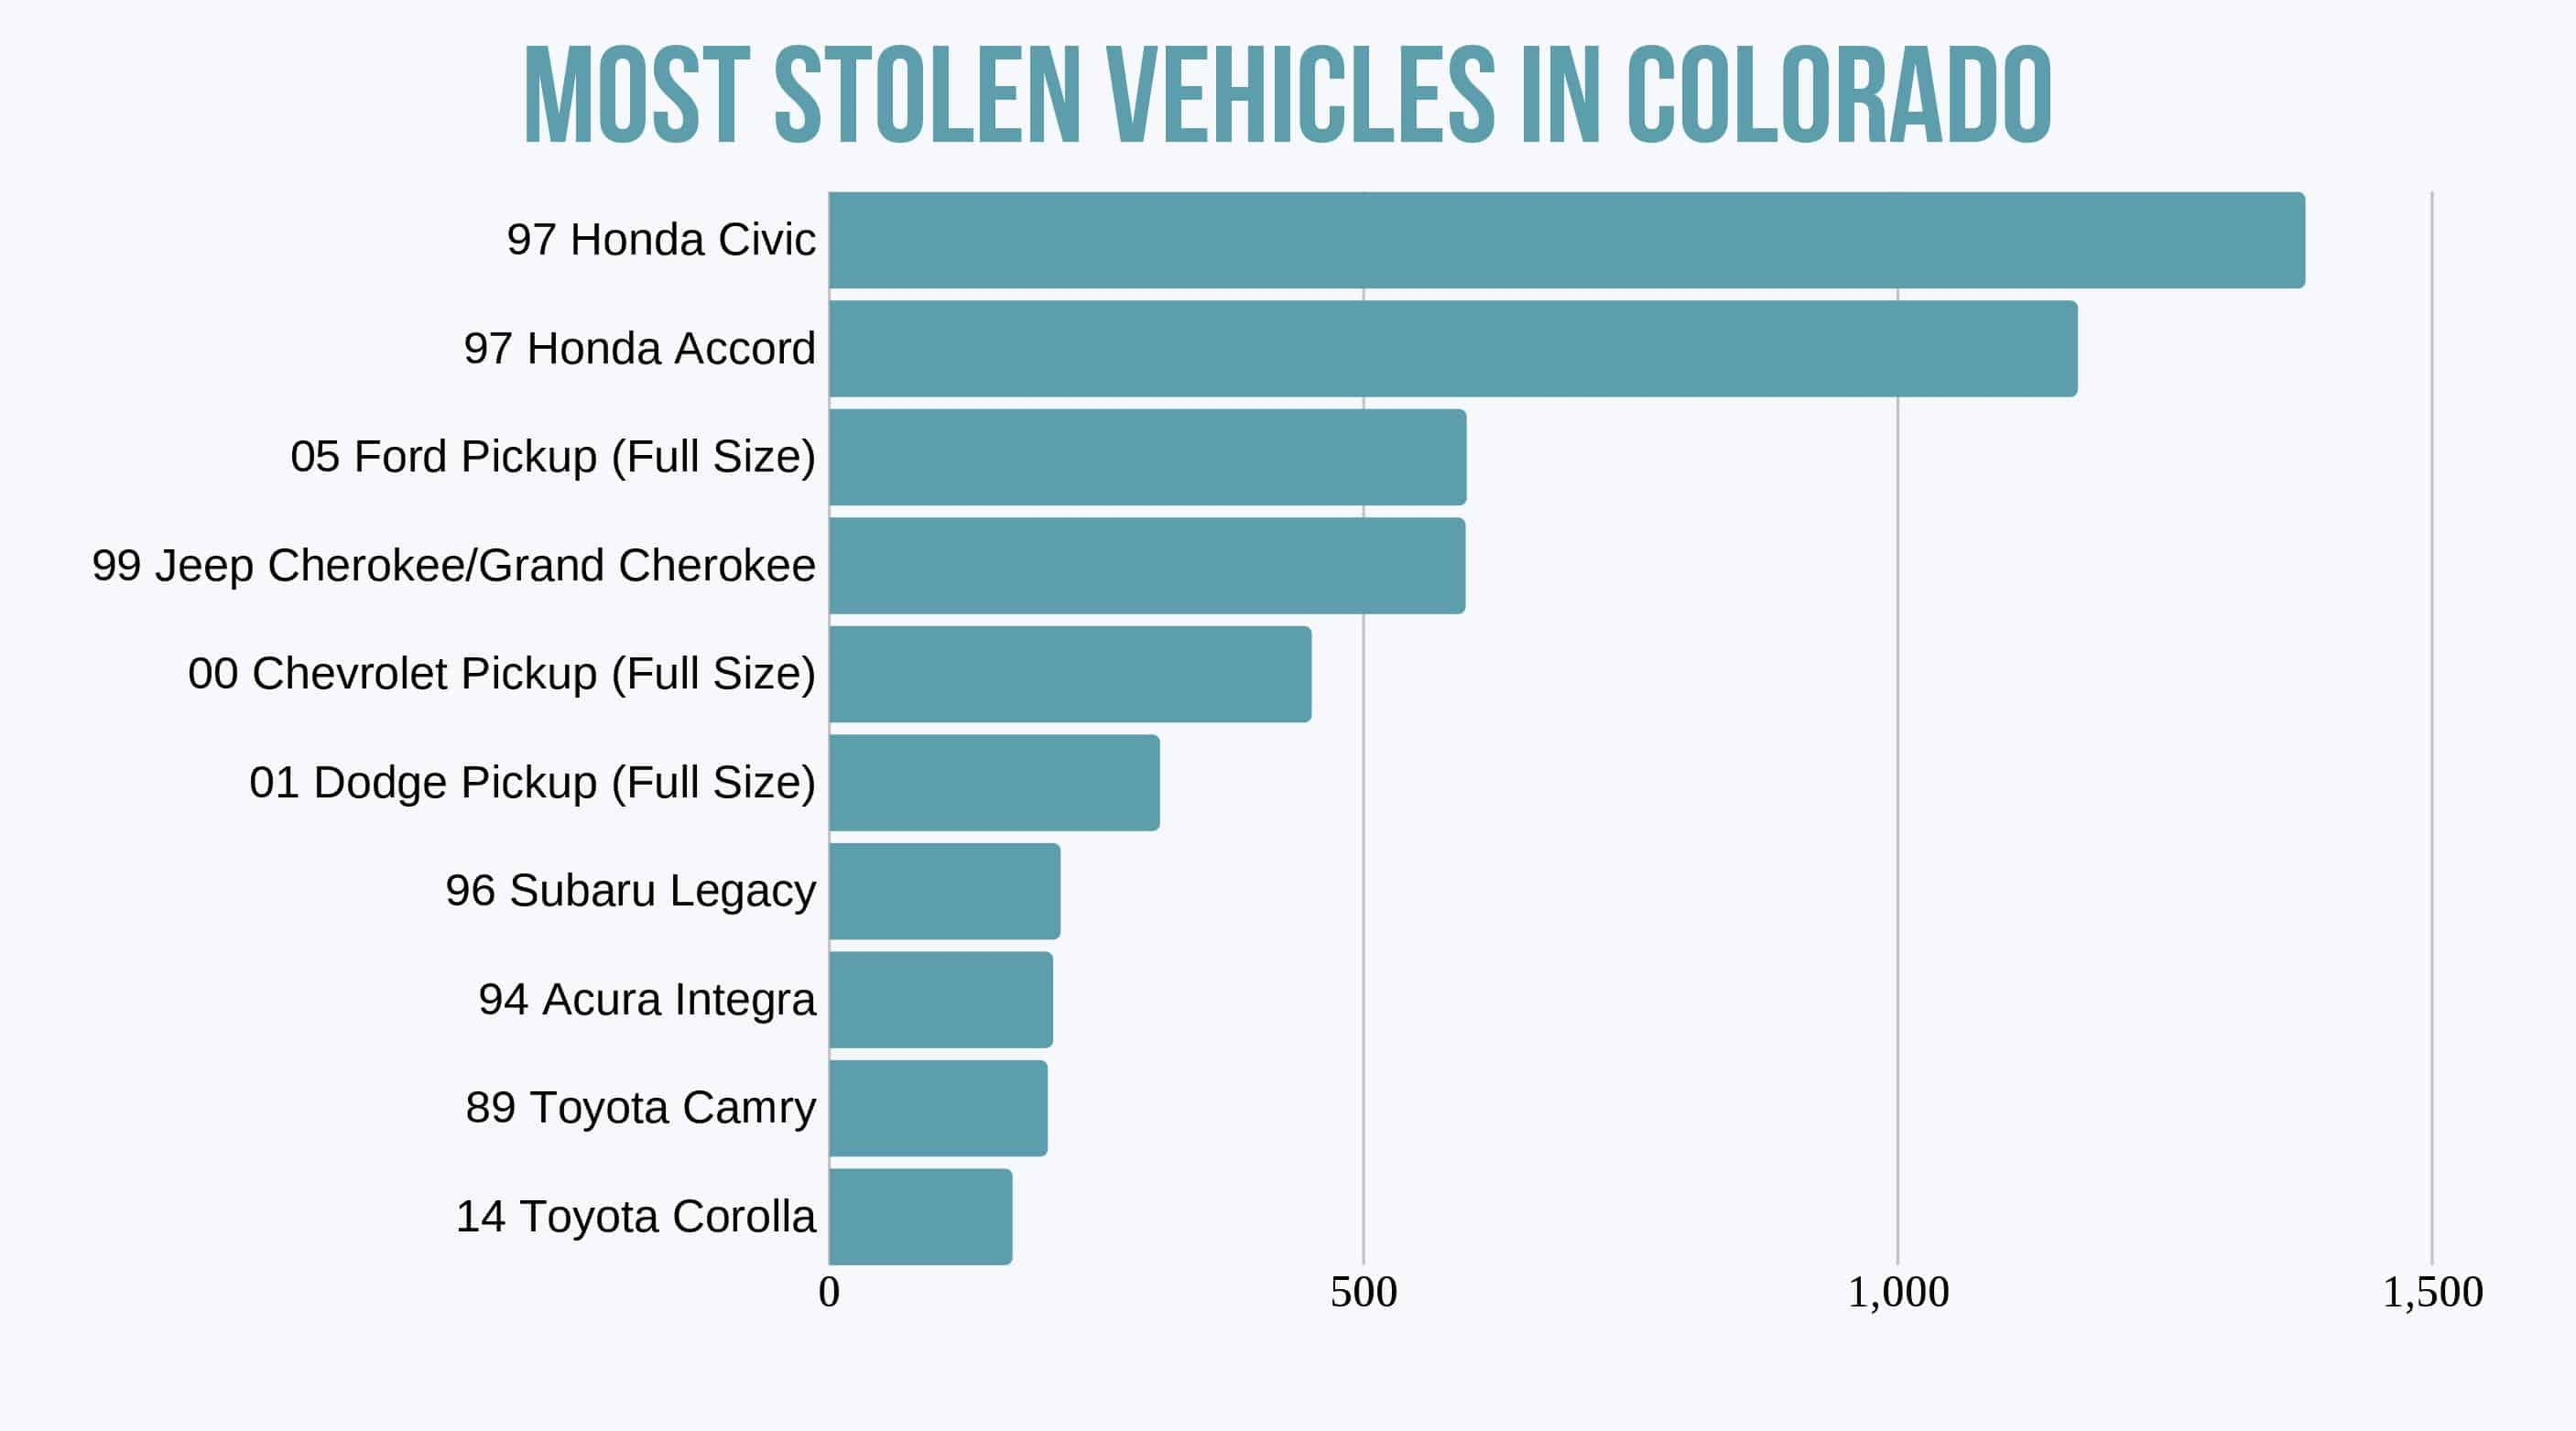 Bar chart of the most stolen vehicles in Colorado